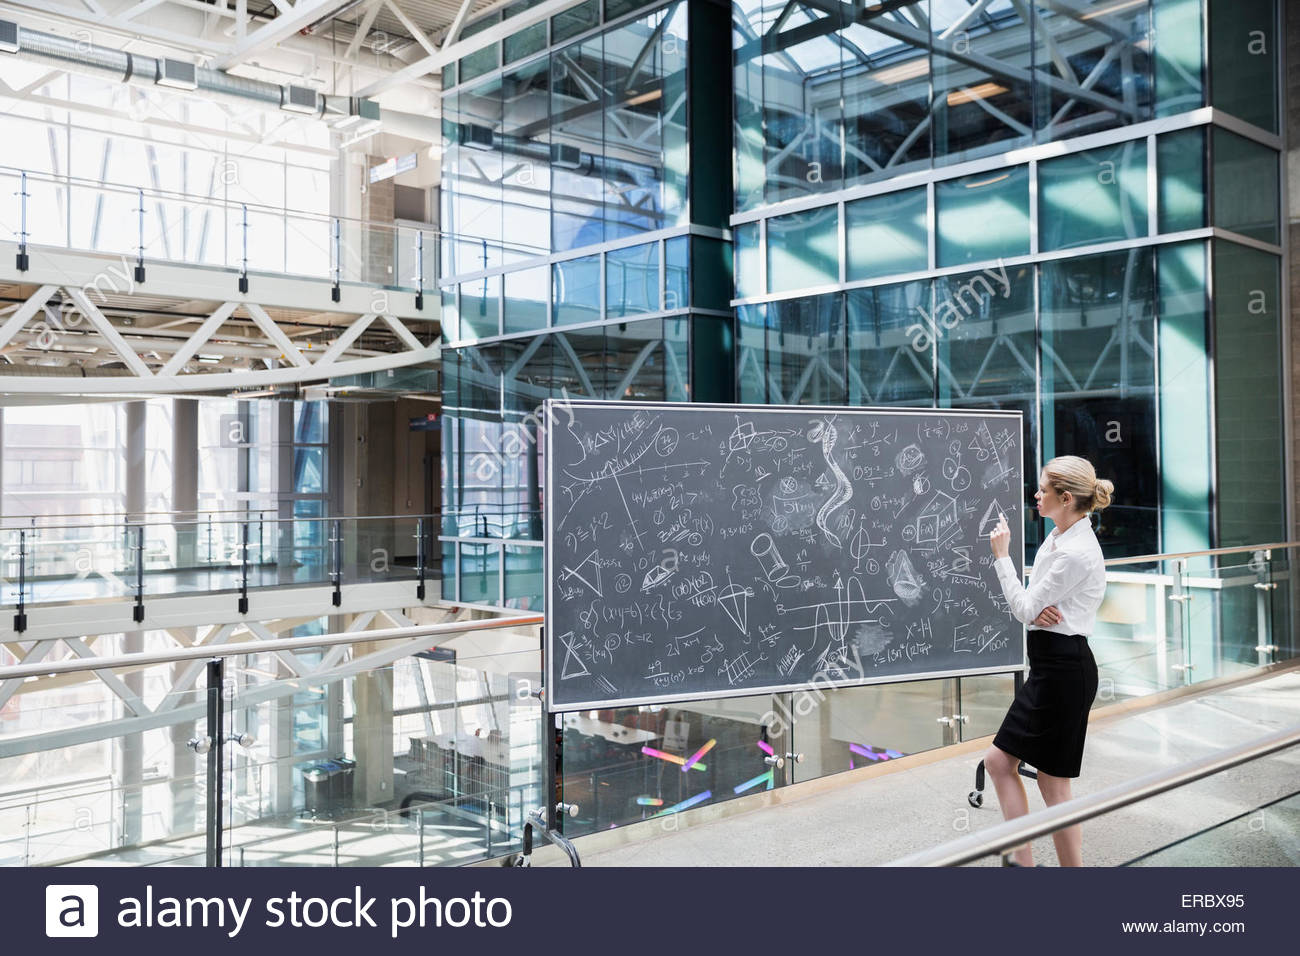 Businesswoman at blackboard with complex equations in atrium - Stock Image